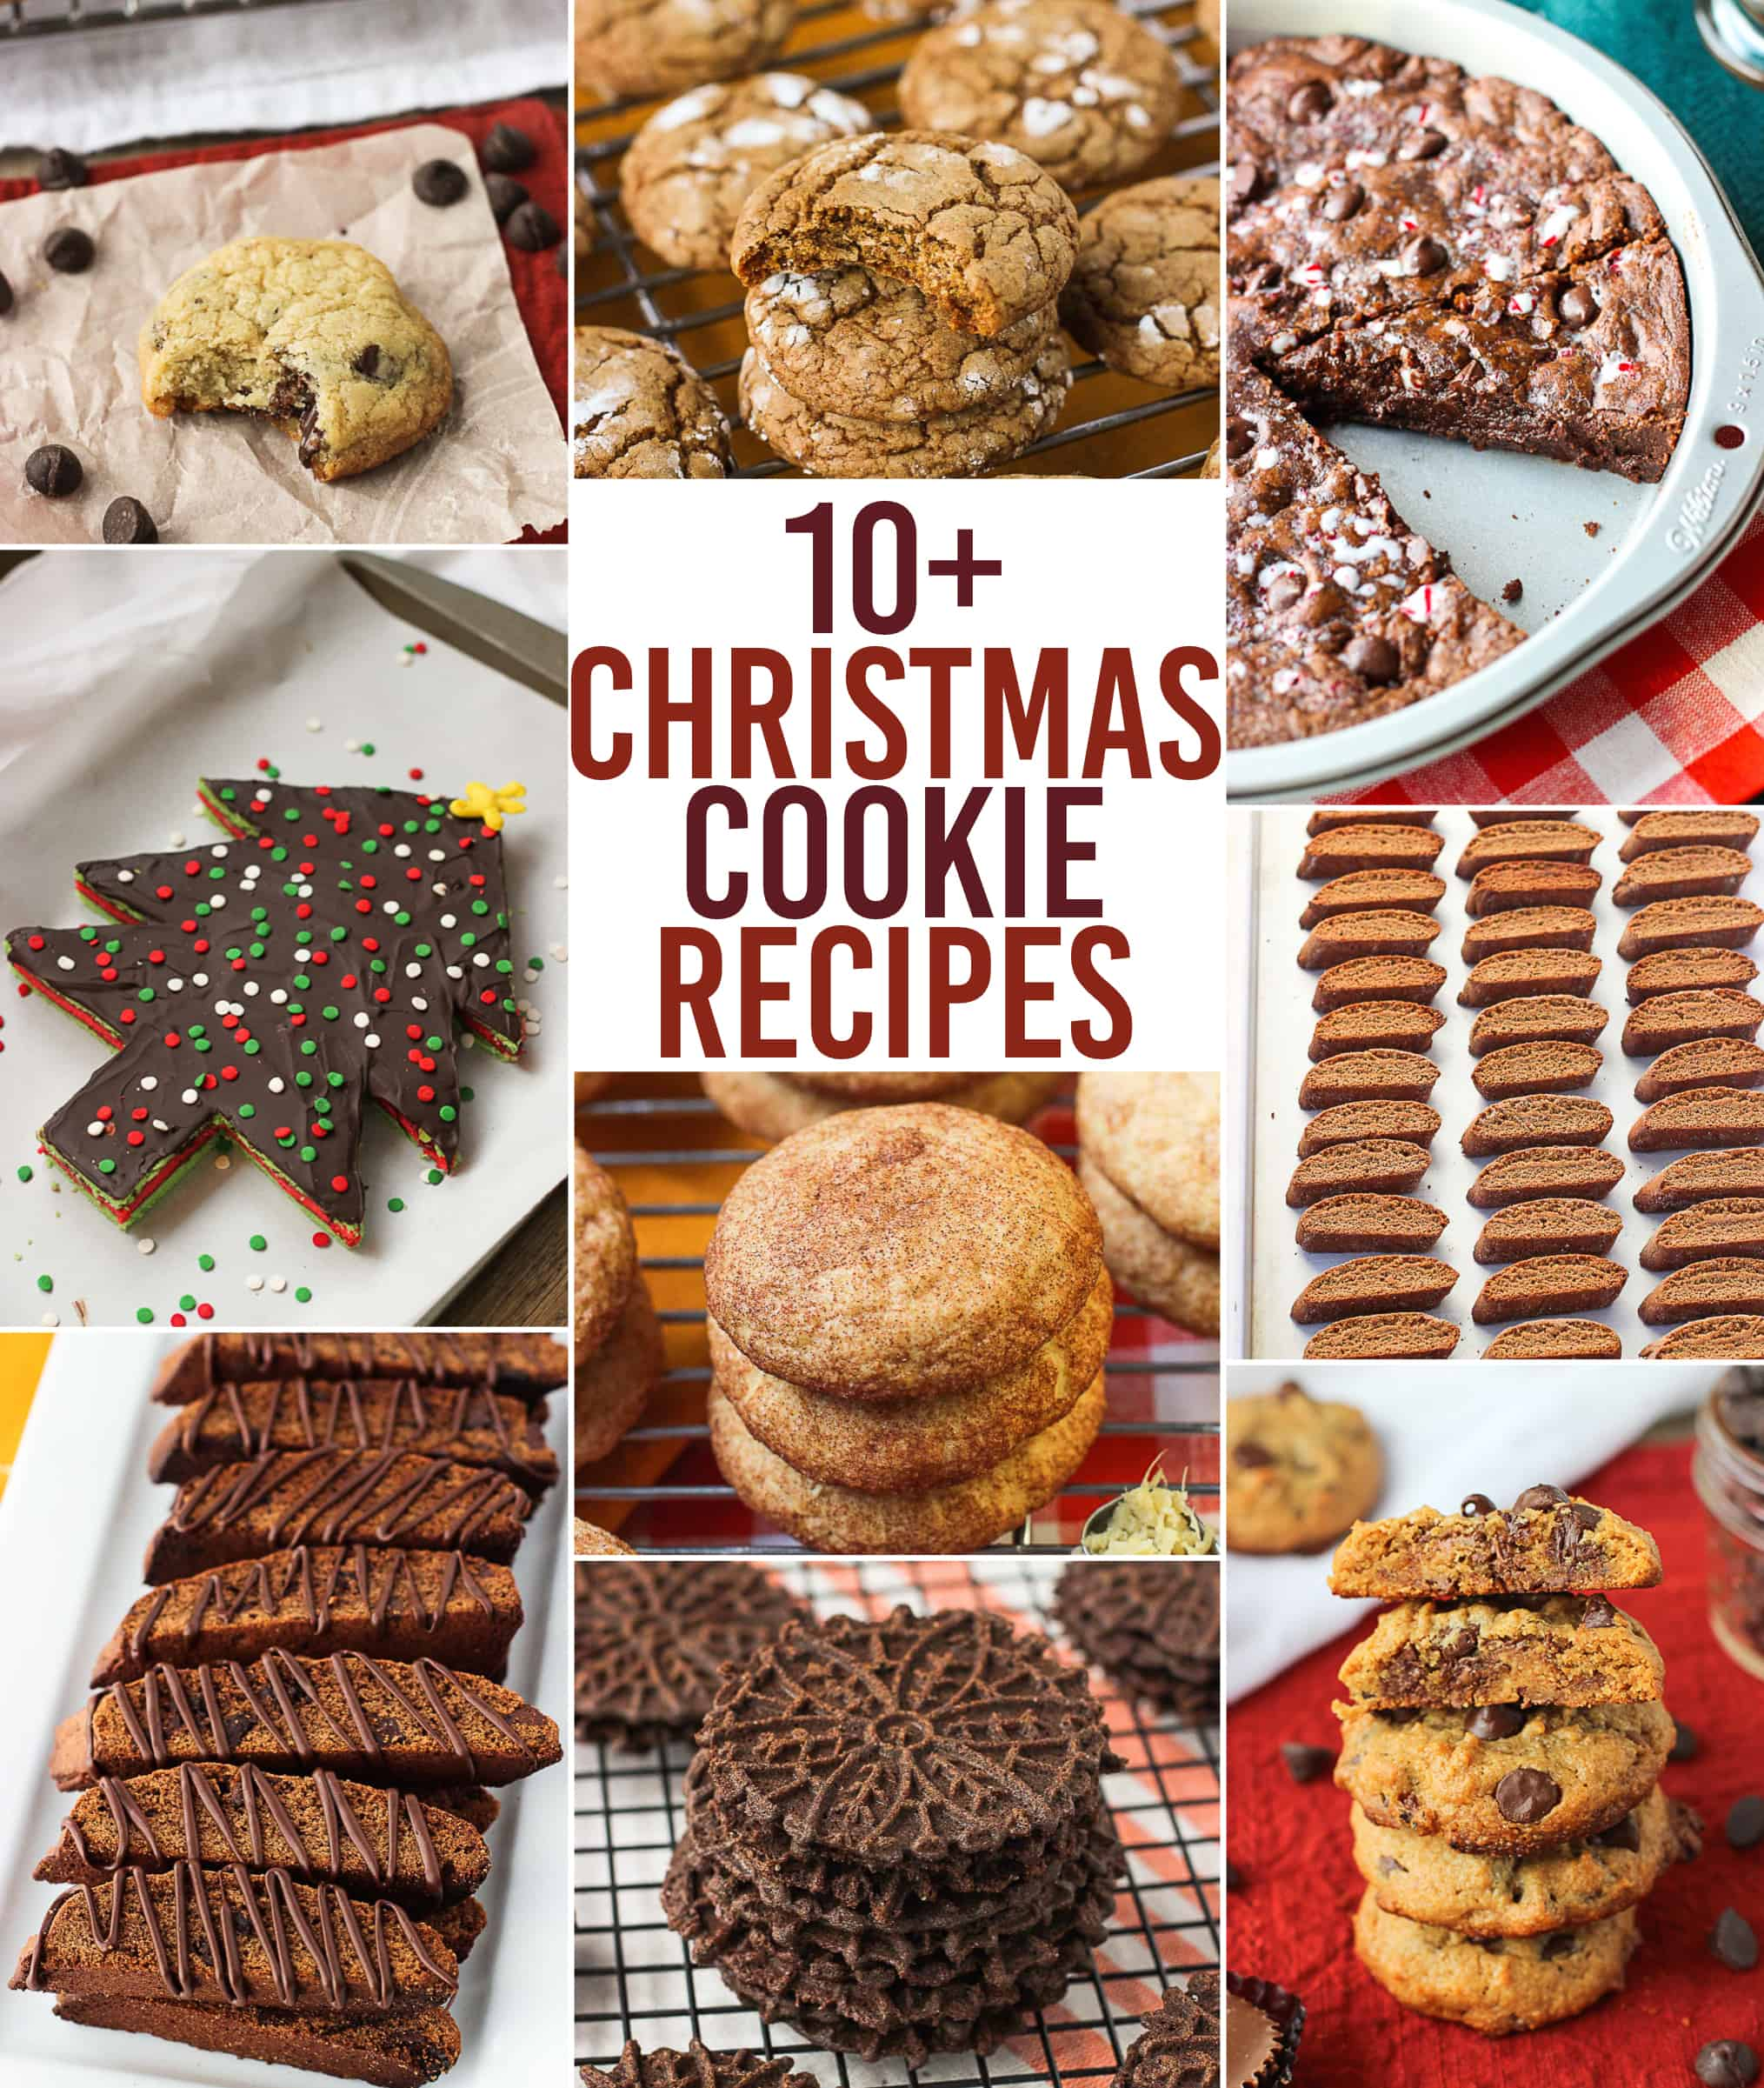 Best 10 Christmas Cookie Recipes: 10+ Christmas Cookie Recipes